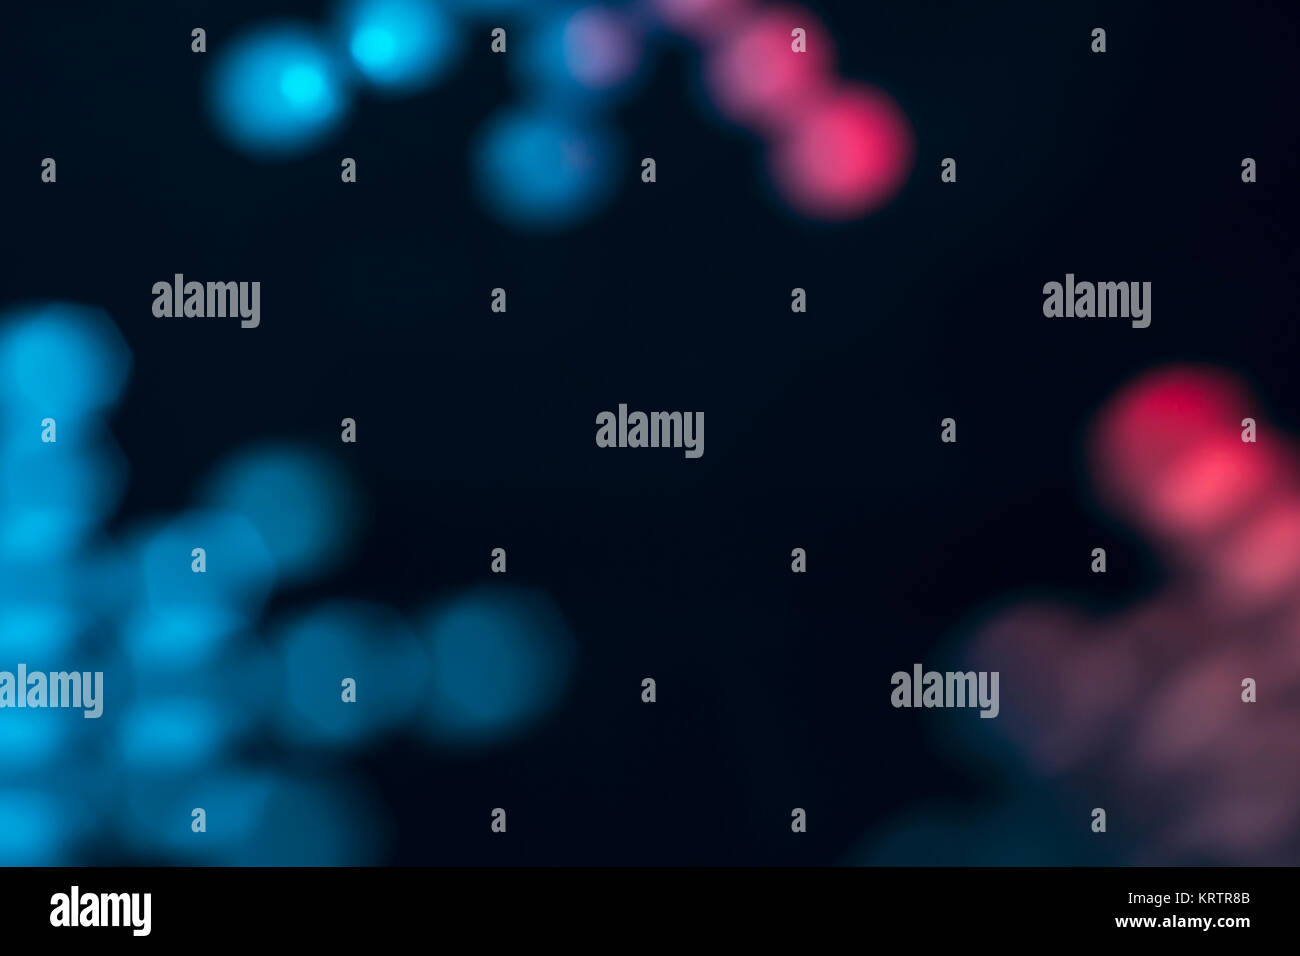 Blue and pink-red abstract shapes suggesting viruses or bacteria. - Stock Image